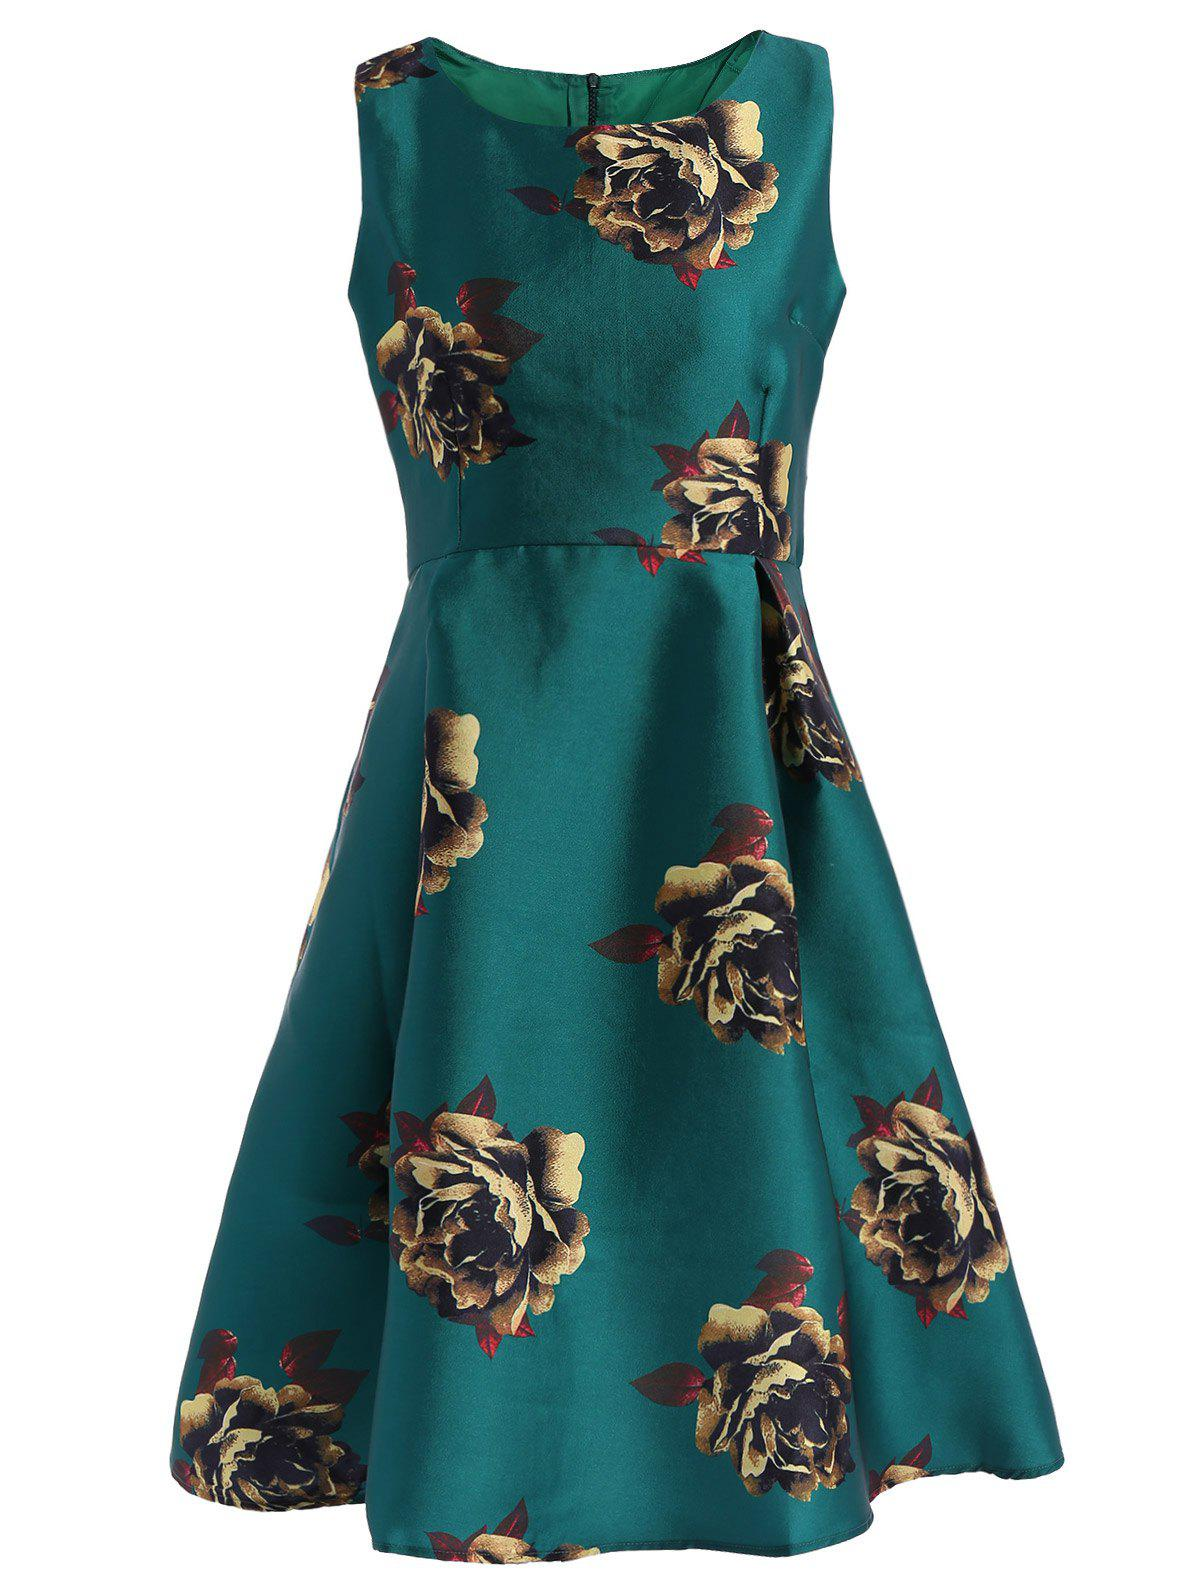 Retro Elegant Round Neck Sleeveless Floral Print Flared Women's Dress